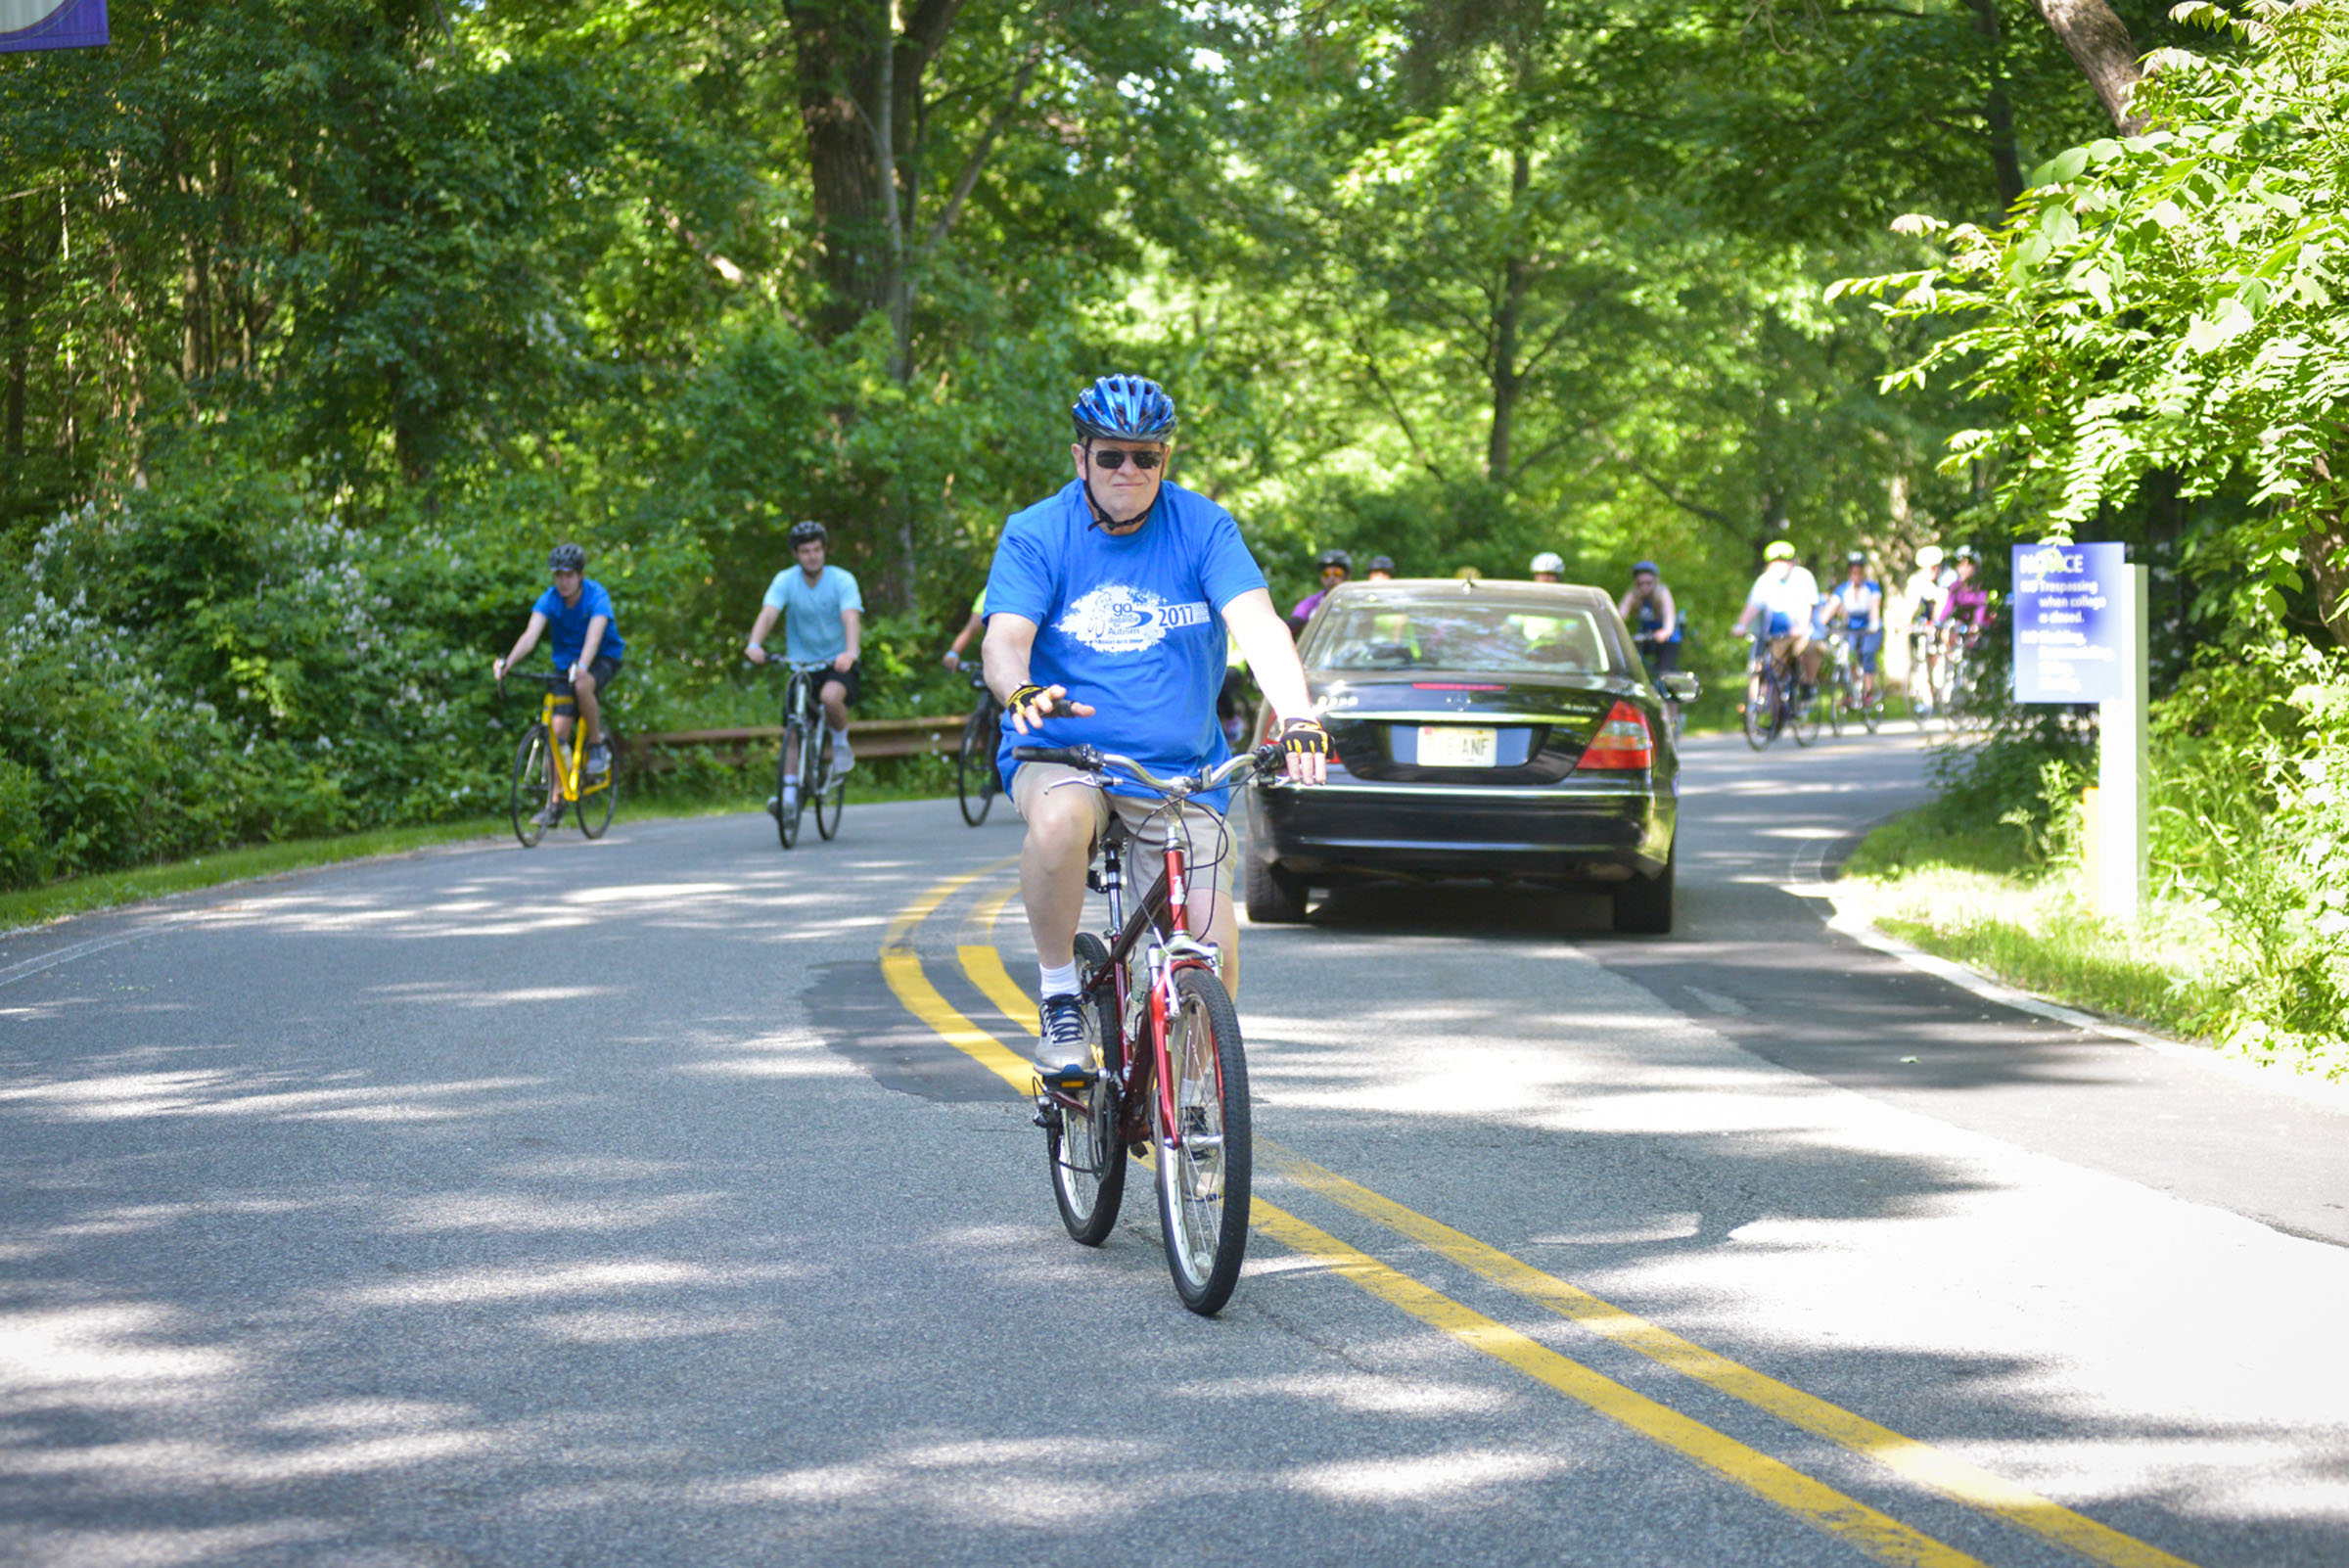 2017-06-04 GTD4A Charity Bike Ride - BCC - Paramus NJ-1939.jpg